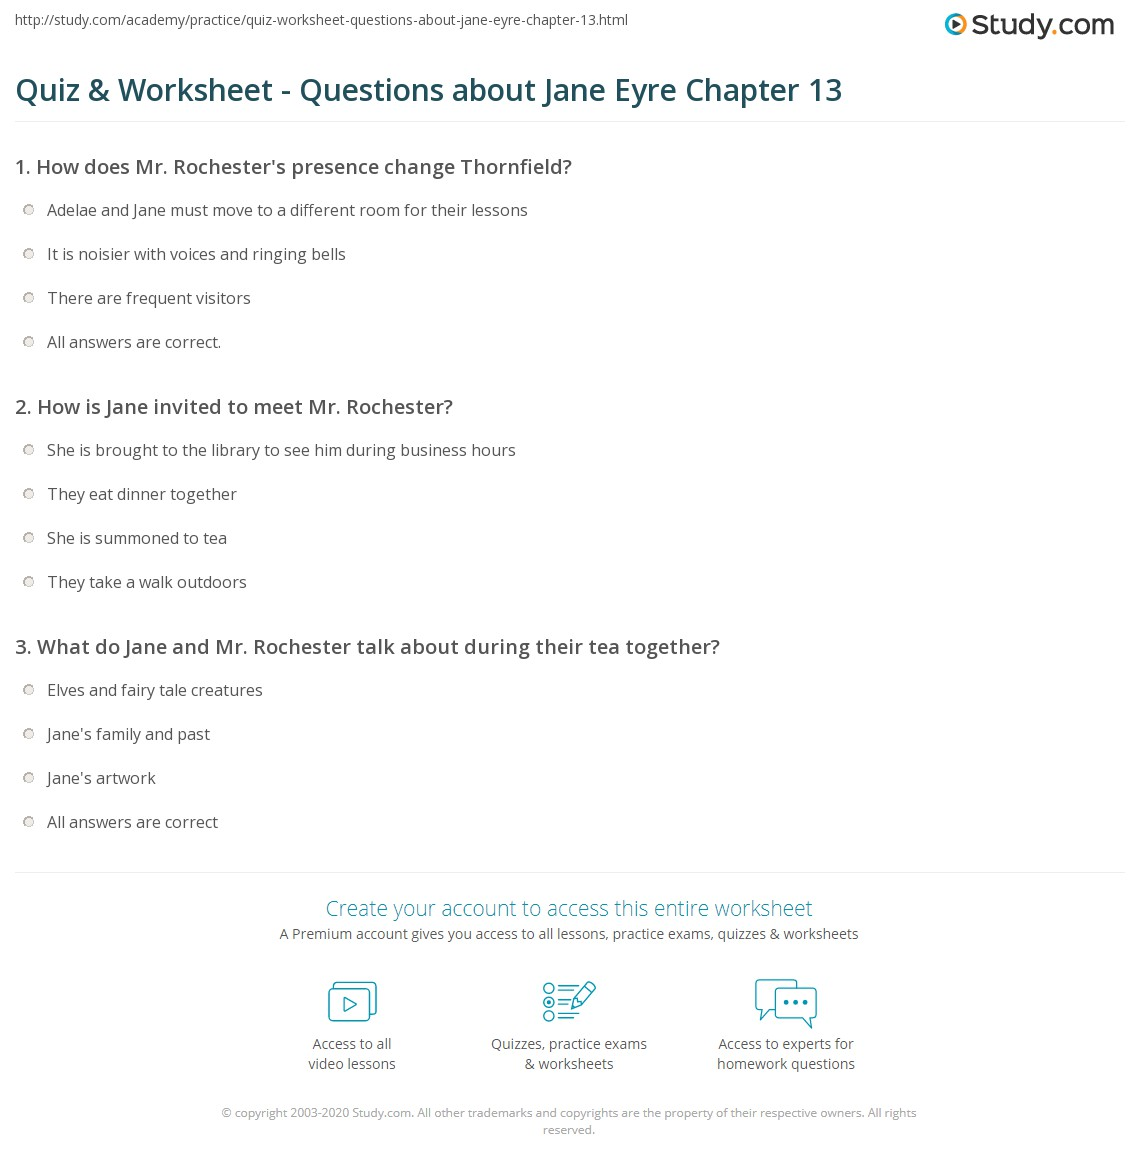 quiz worksheet questions about jane eyre chapter 13 study com rh study com Worksheets with Answer Keys Glencoe Algebra 1 2014